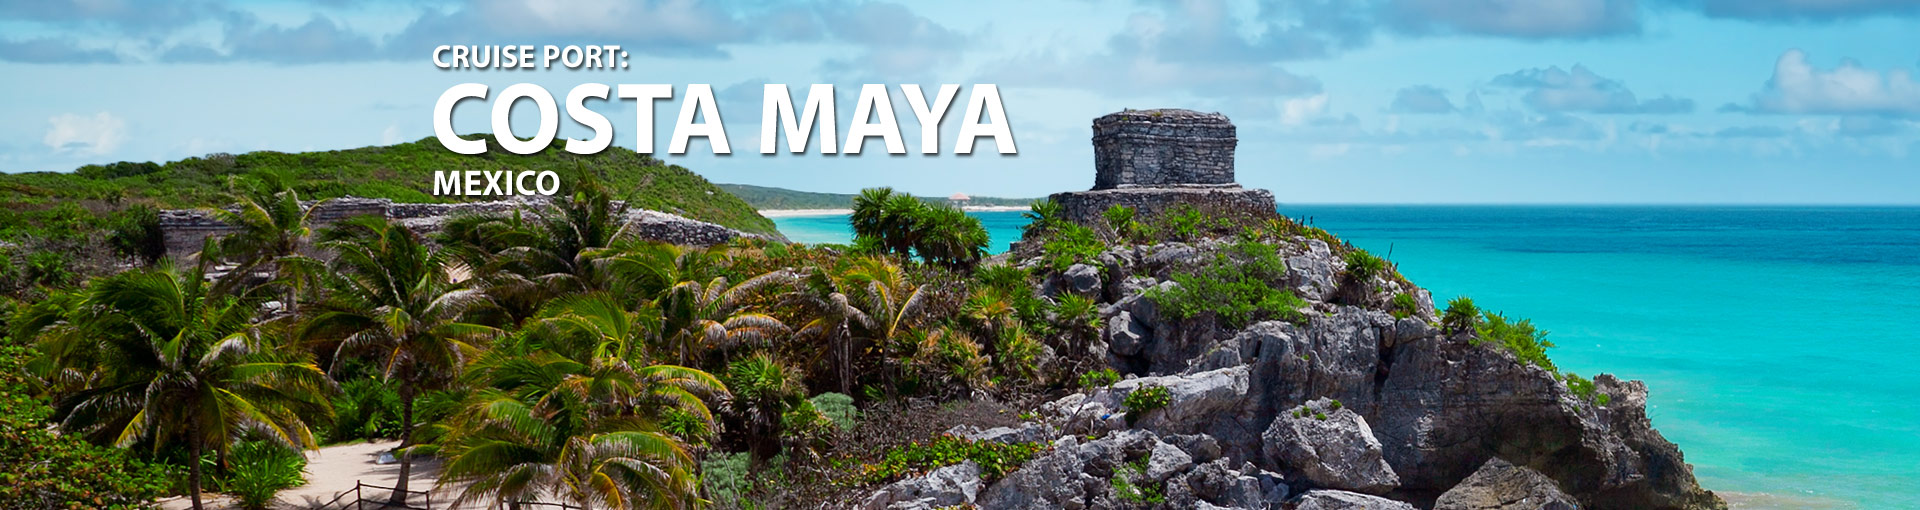 Cruises to Costa Maya, Mexico